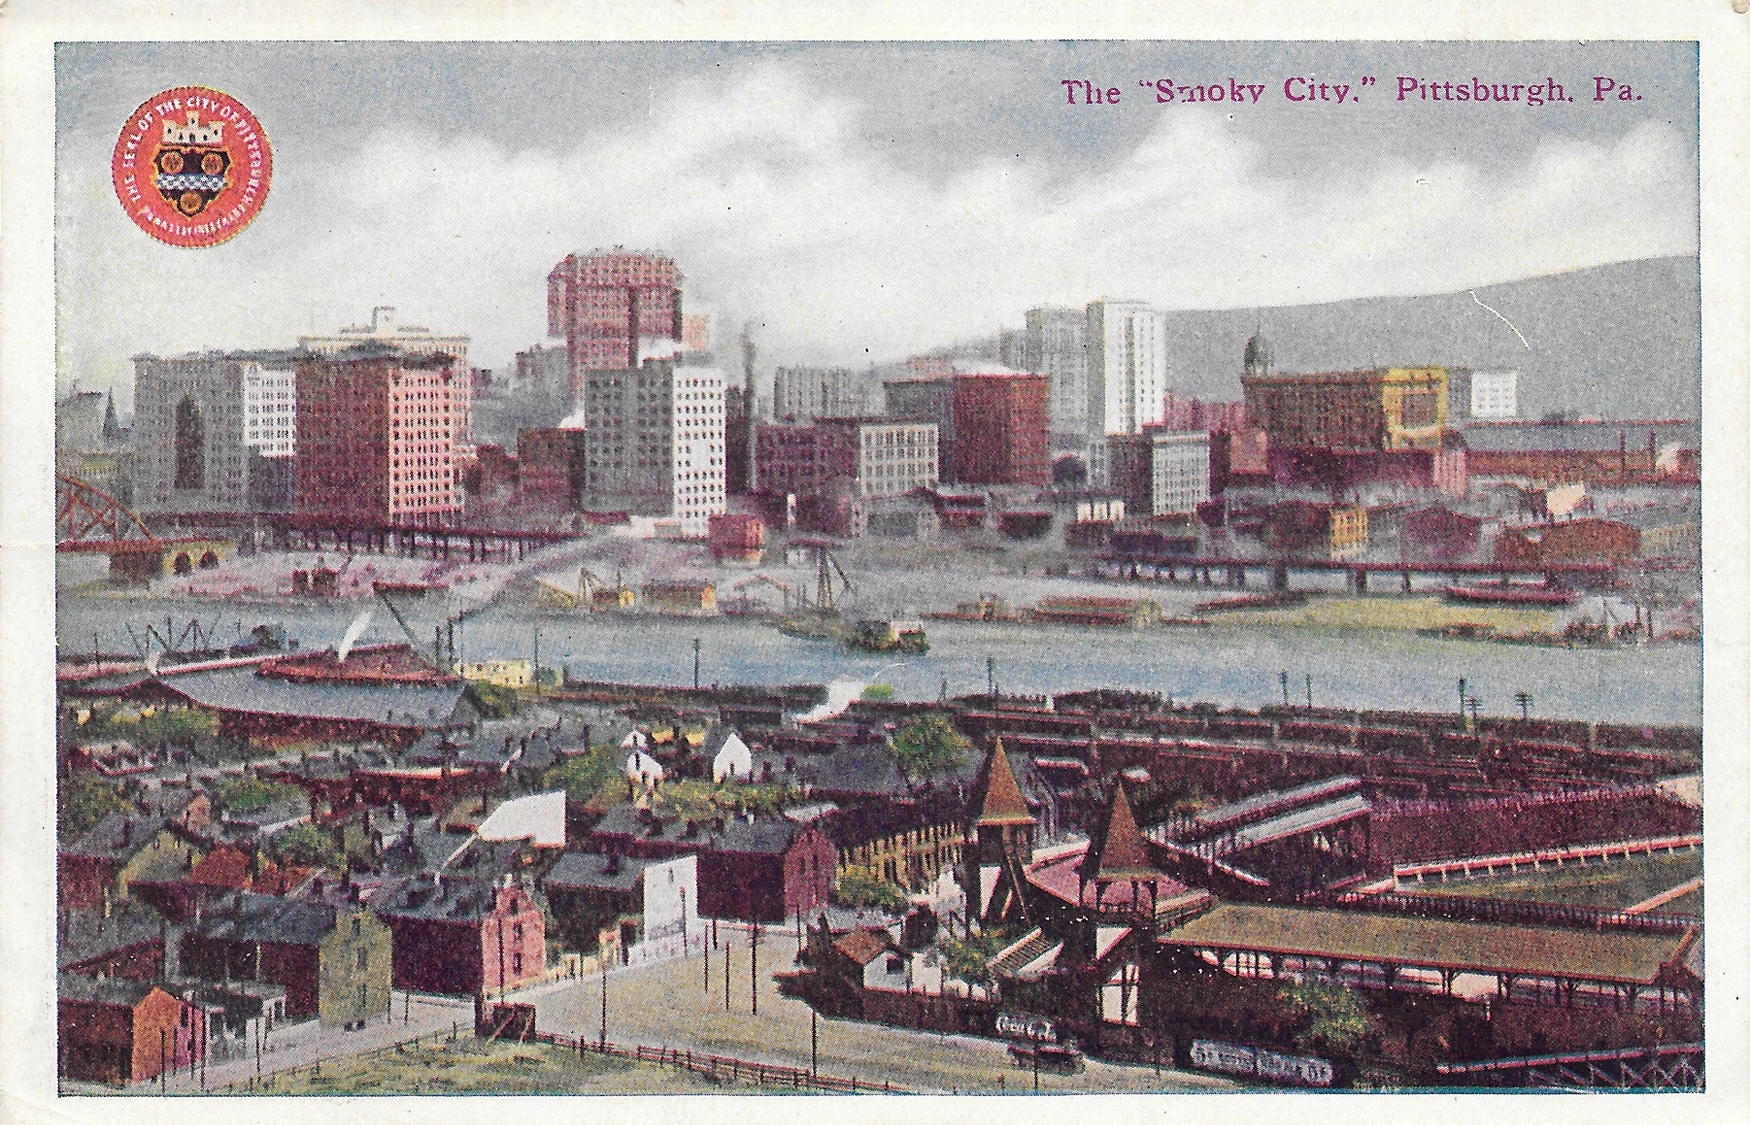 Postcard22-TheSmokyCity